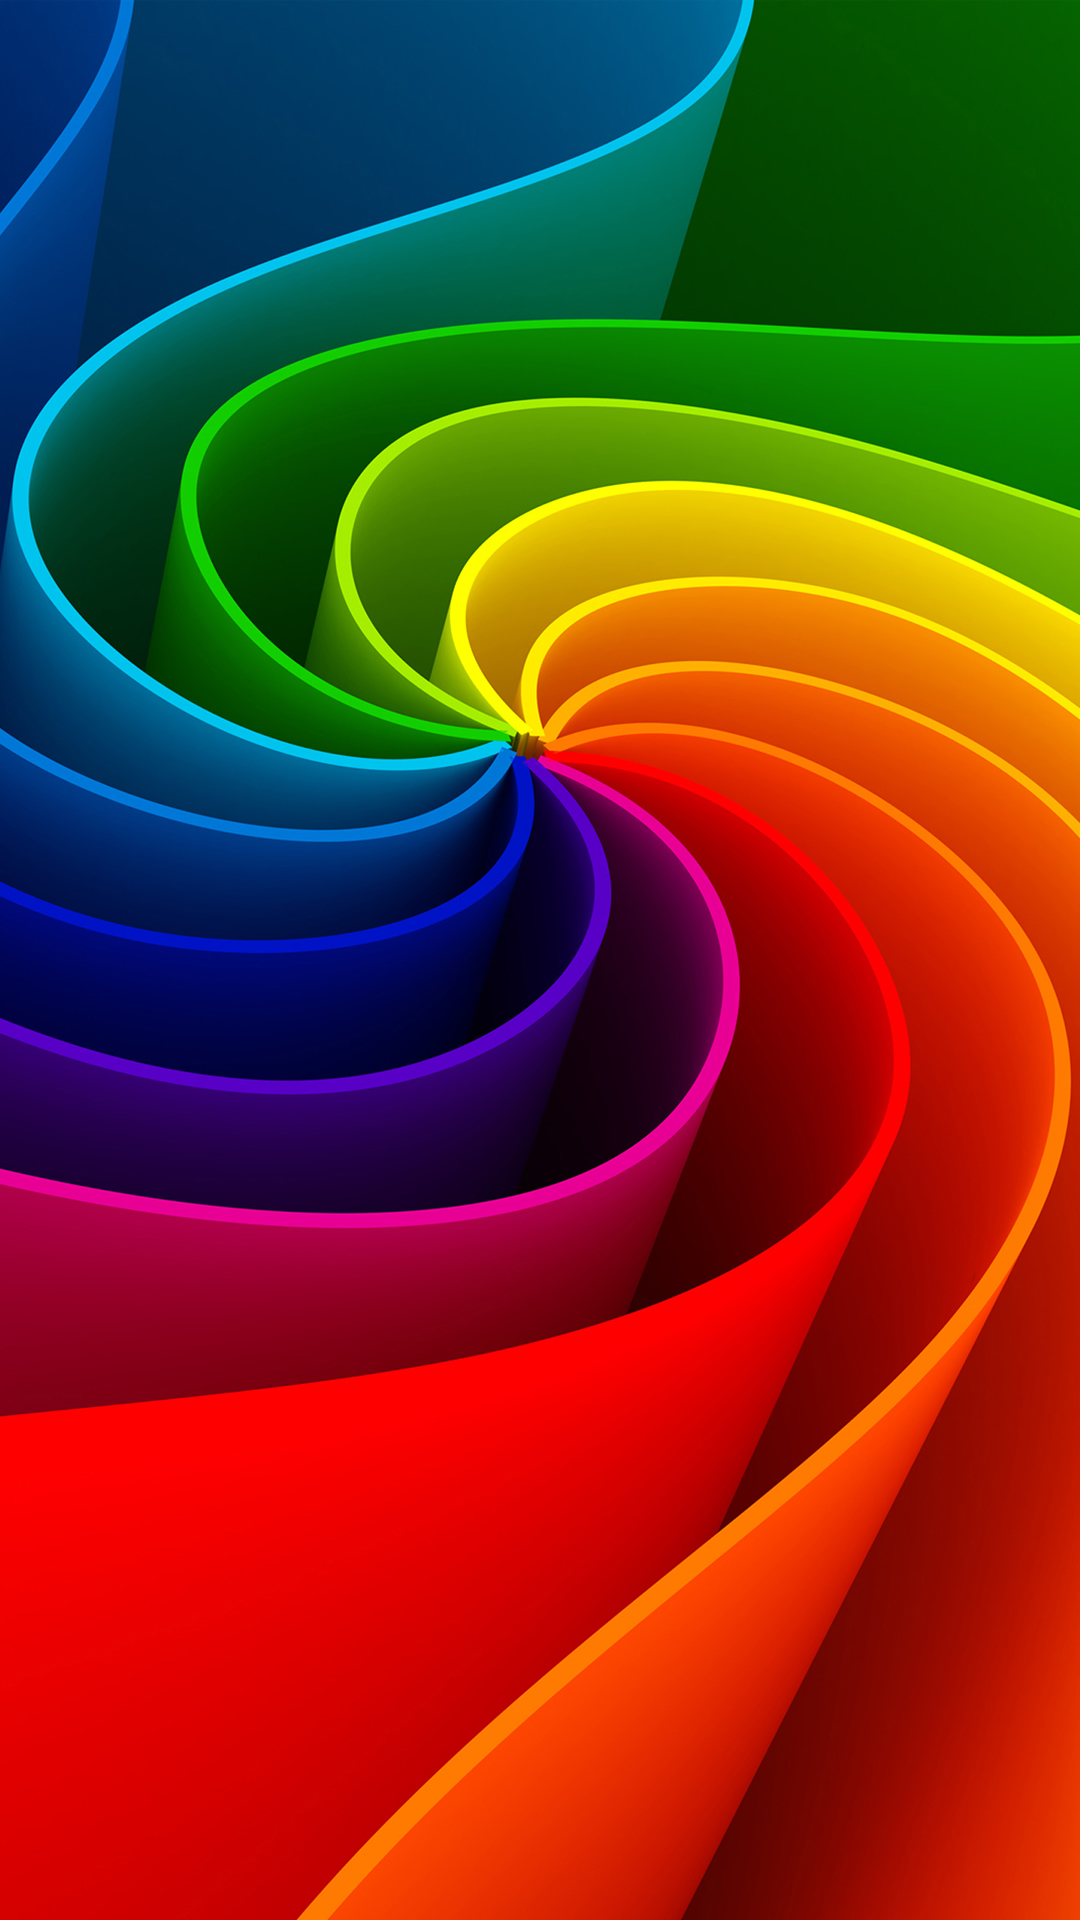 Most Popular Iphone Wallpapers